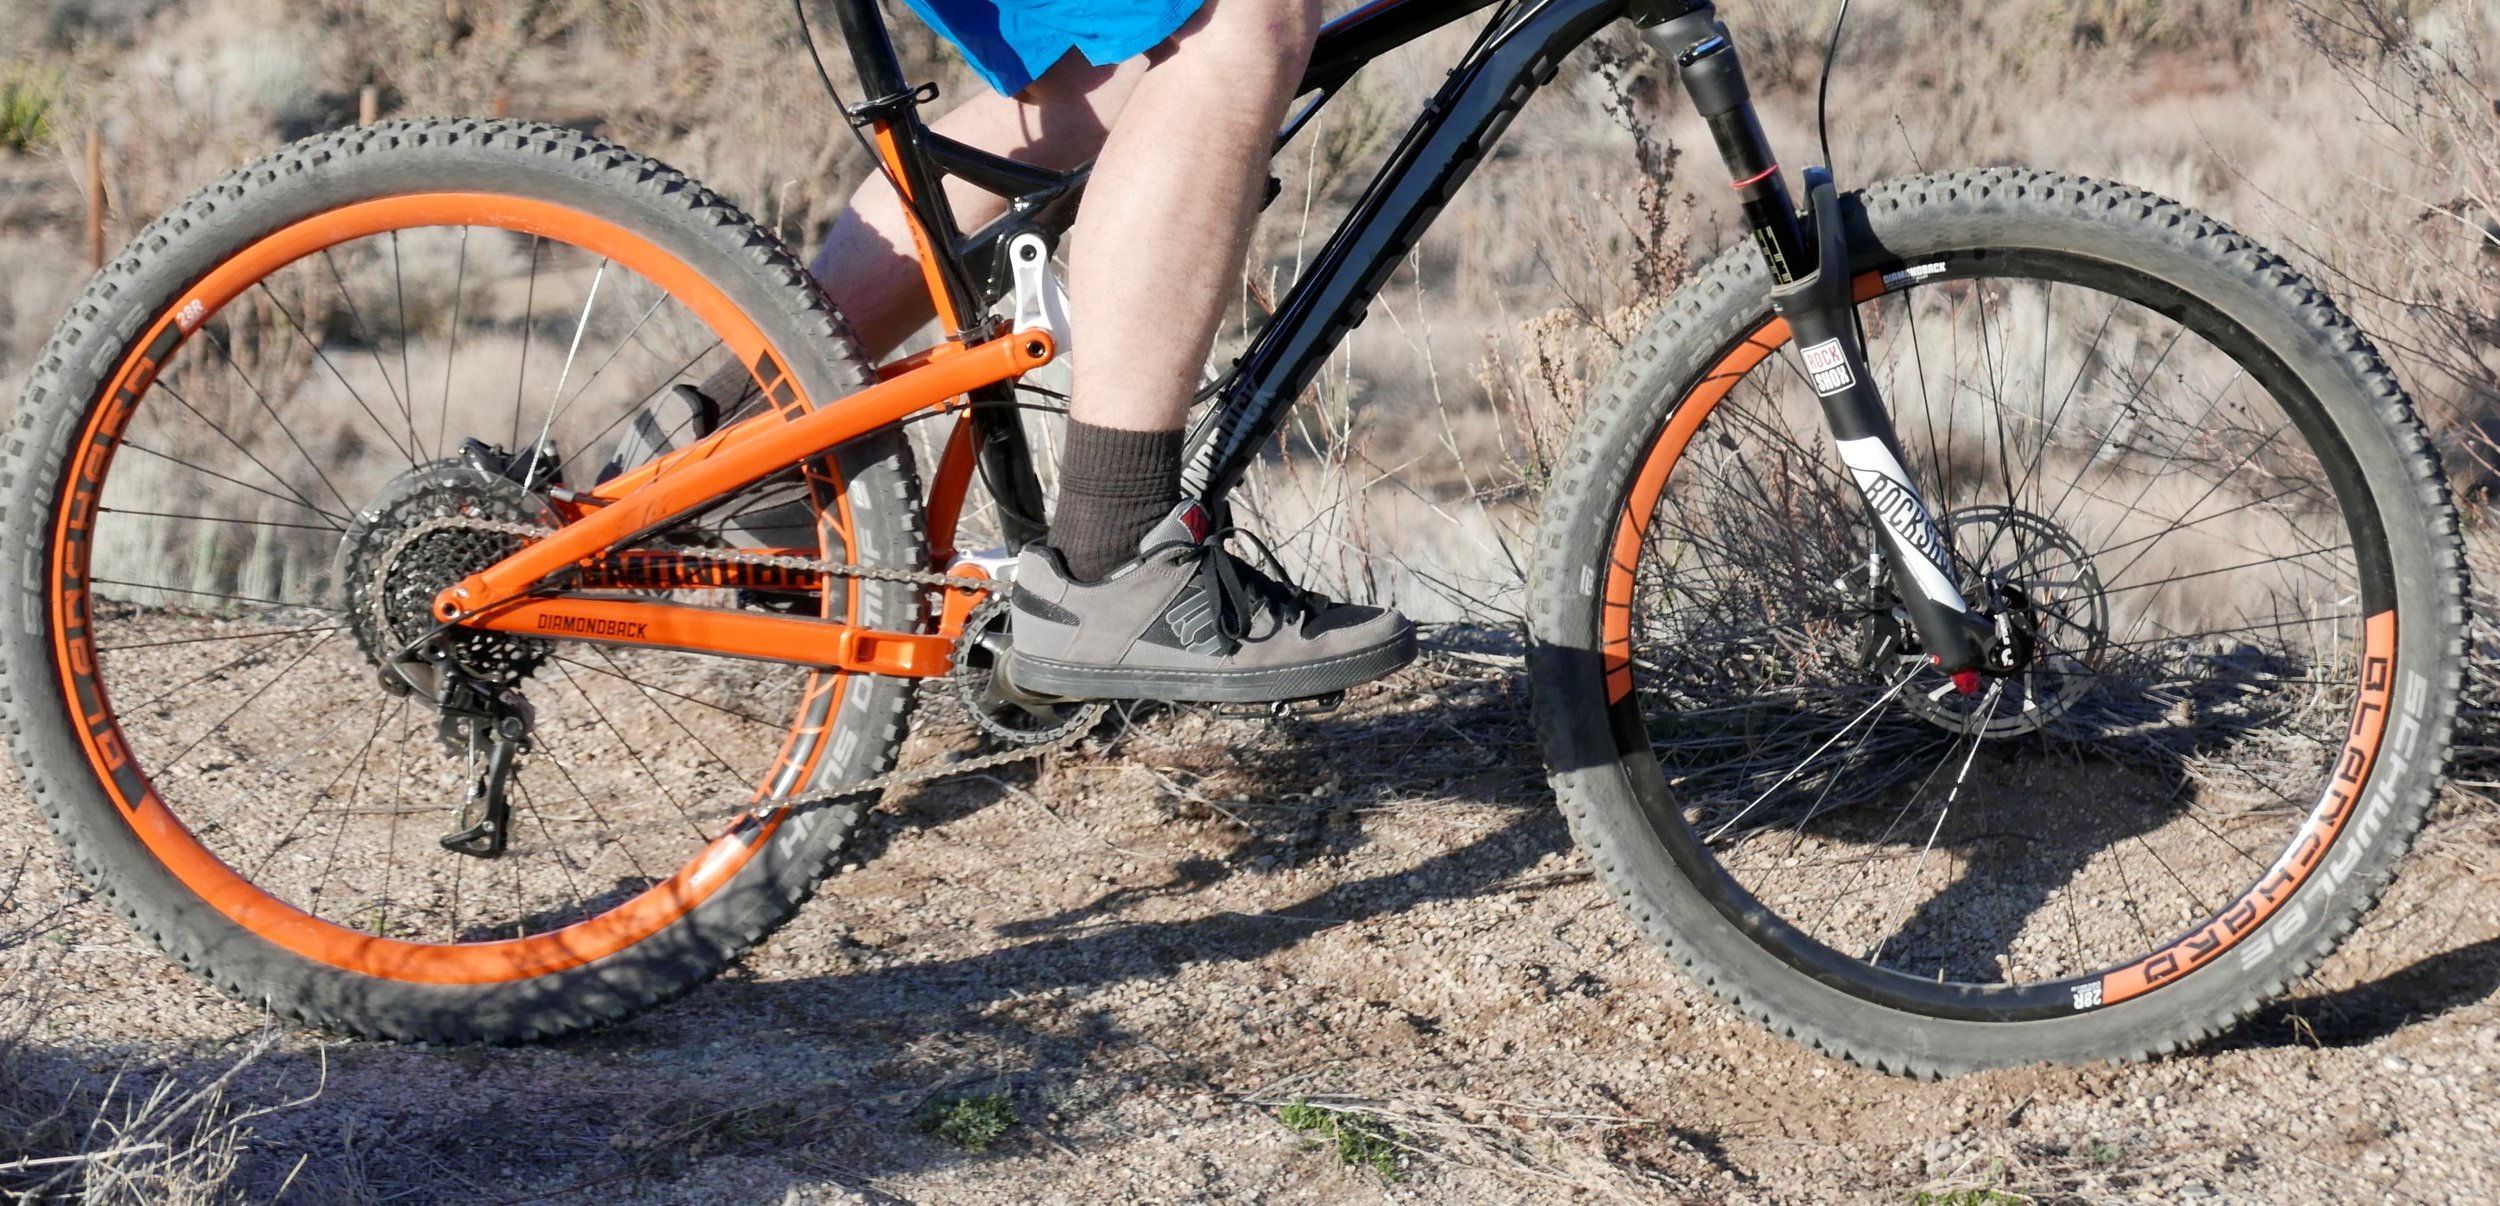 Neutral pedal position allows the rider to equally distribute their weight on each pedal.-Photo MST Adventures, Rider-Corey Spoores